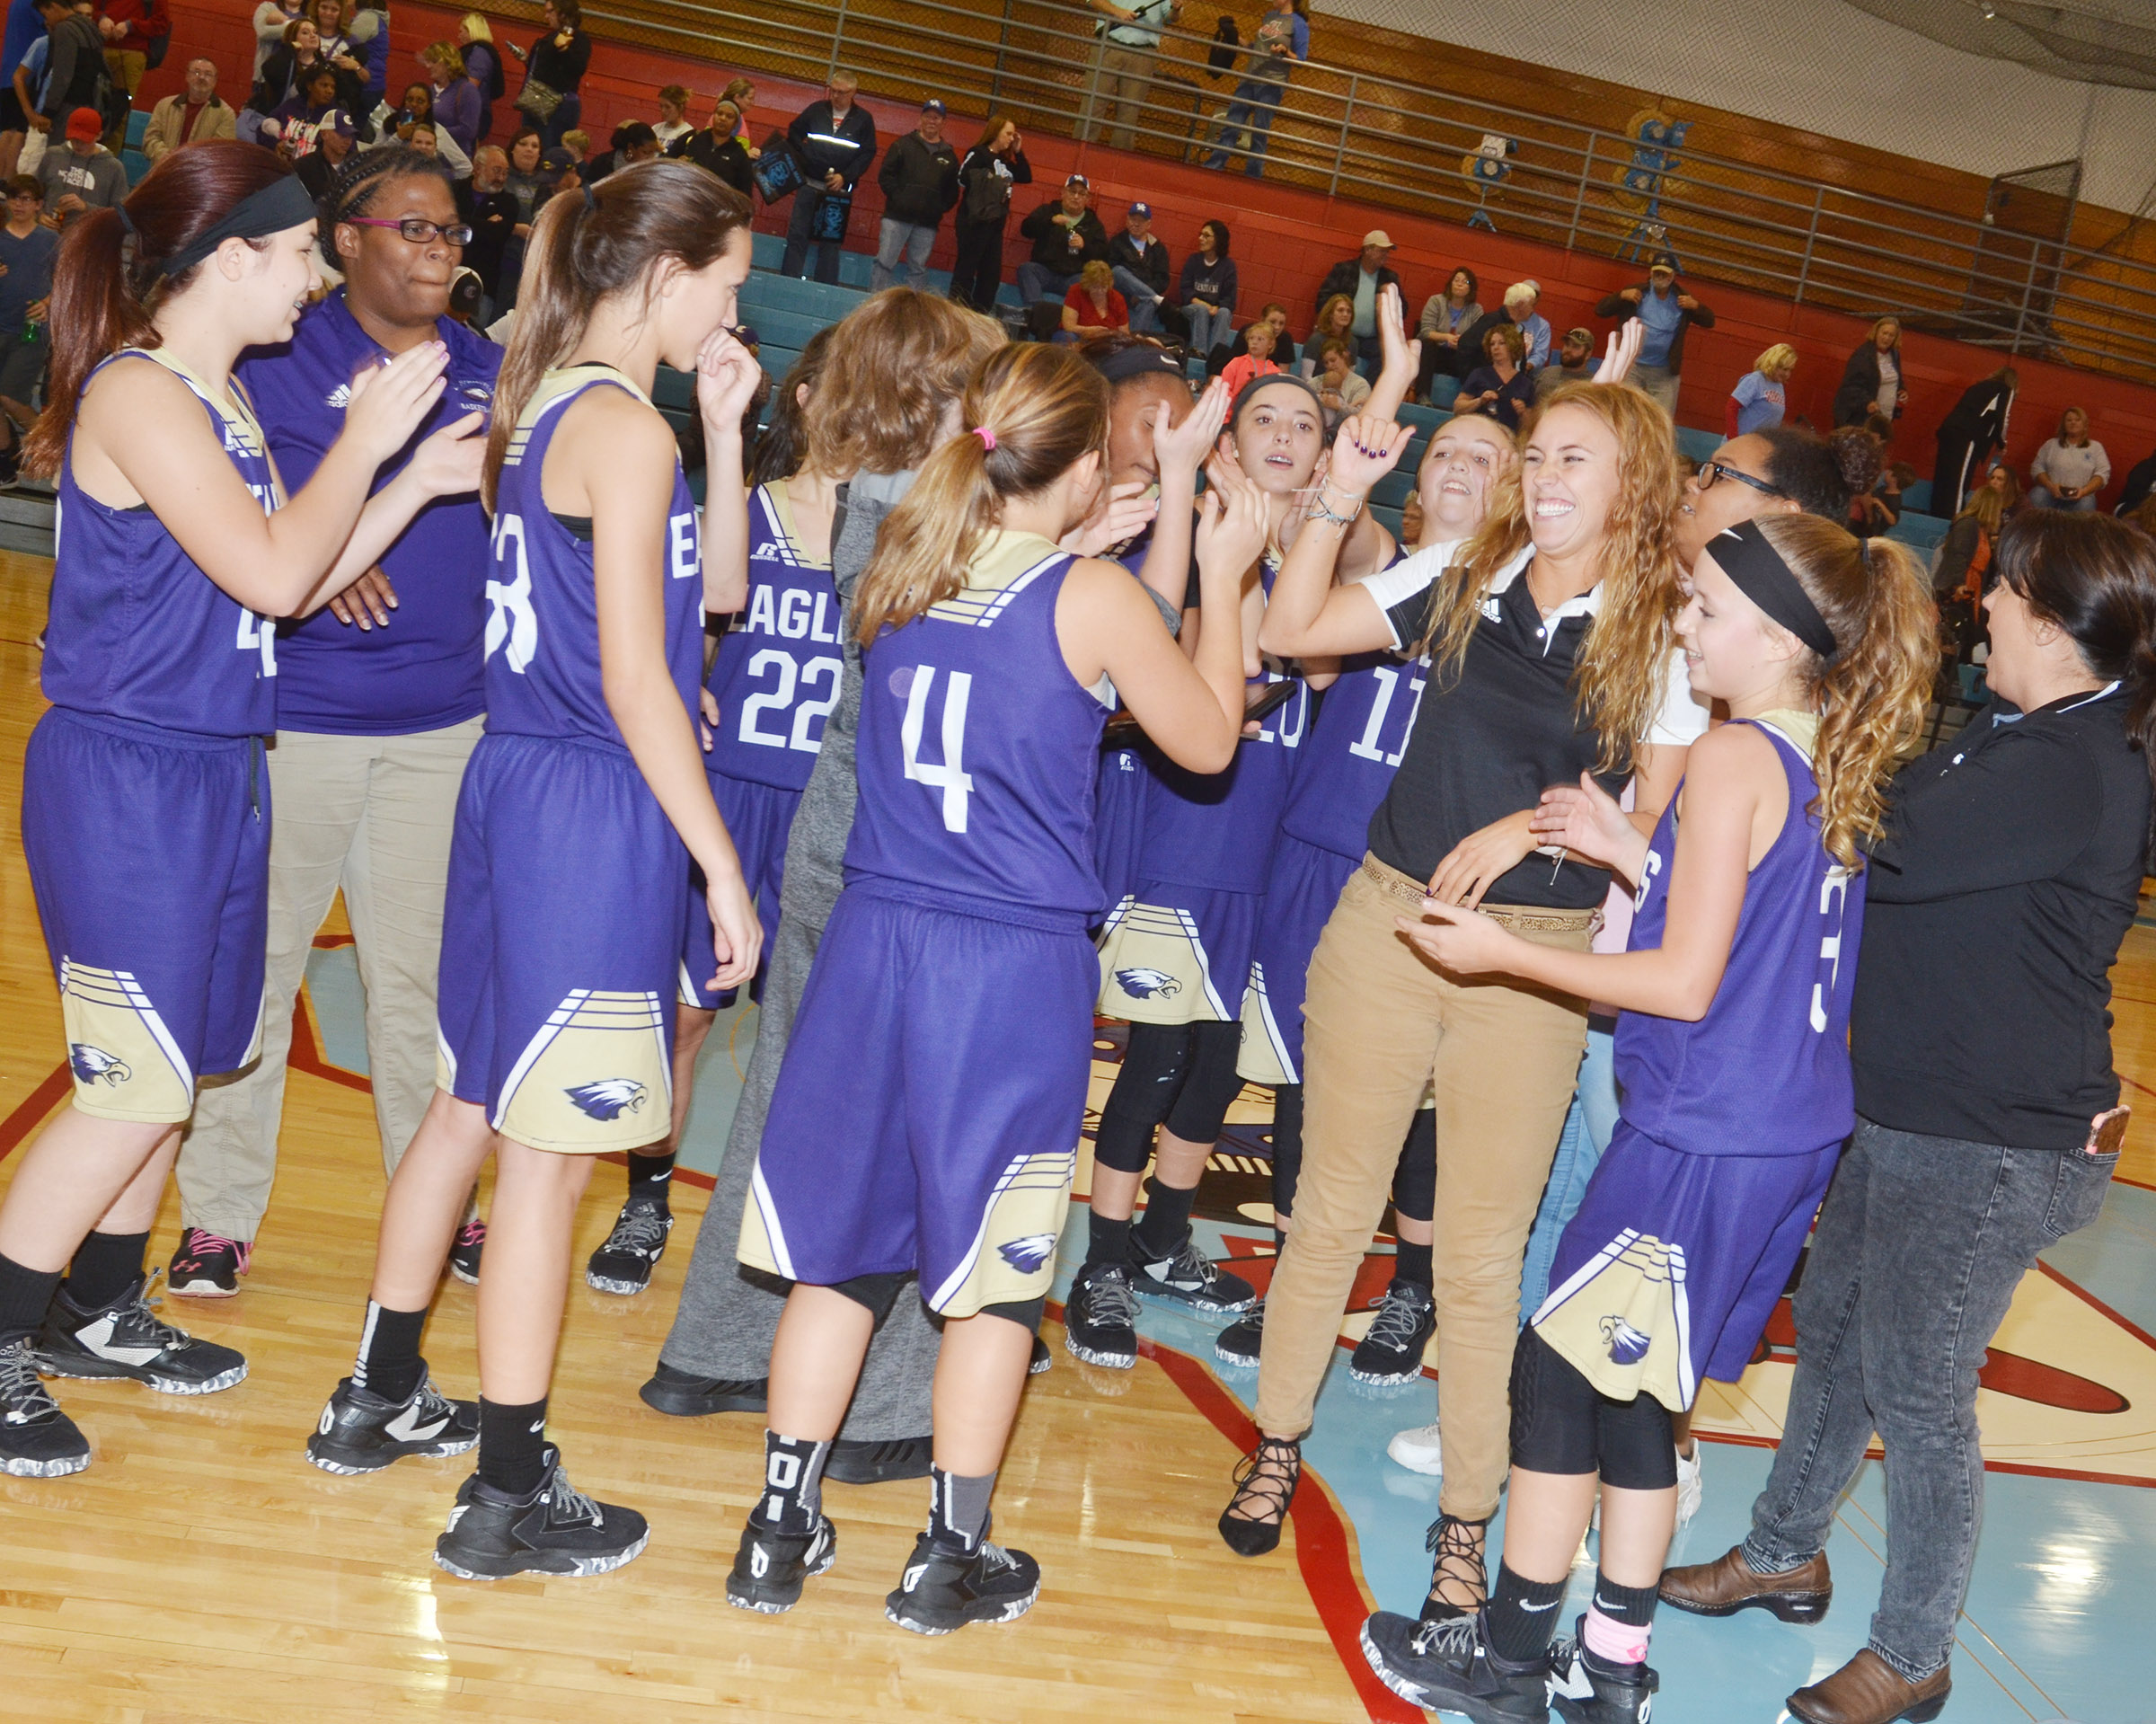 CMS girls' basketball players celebrate their win.